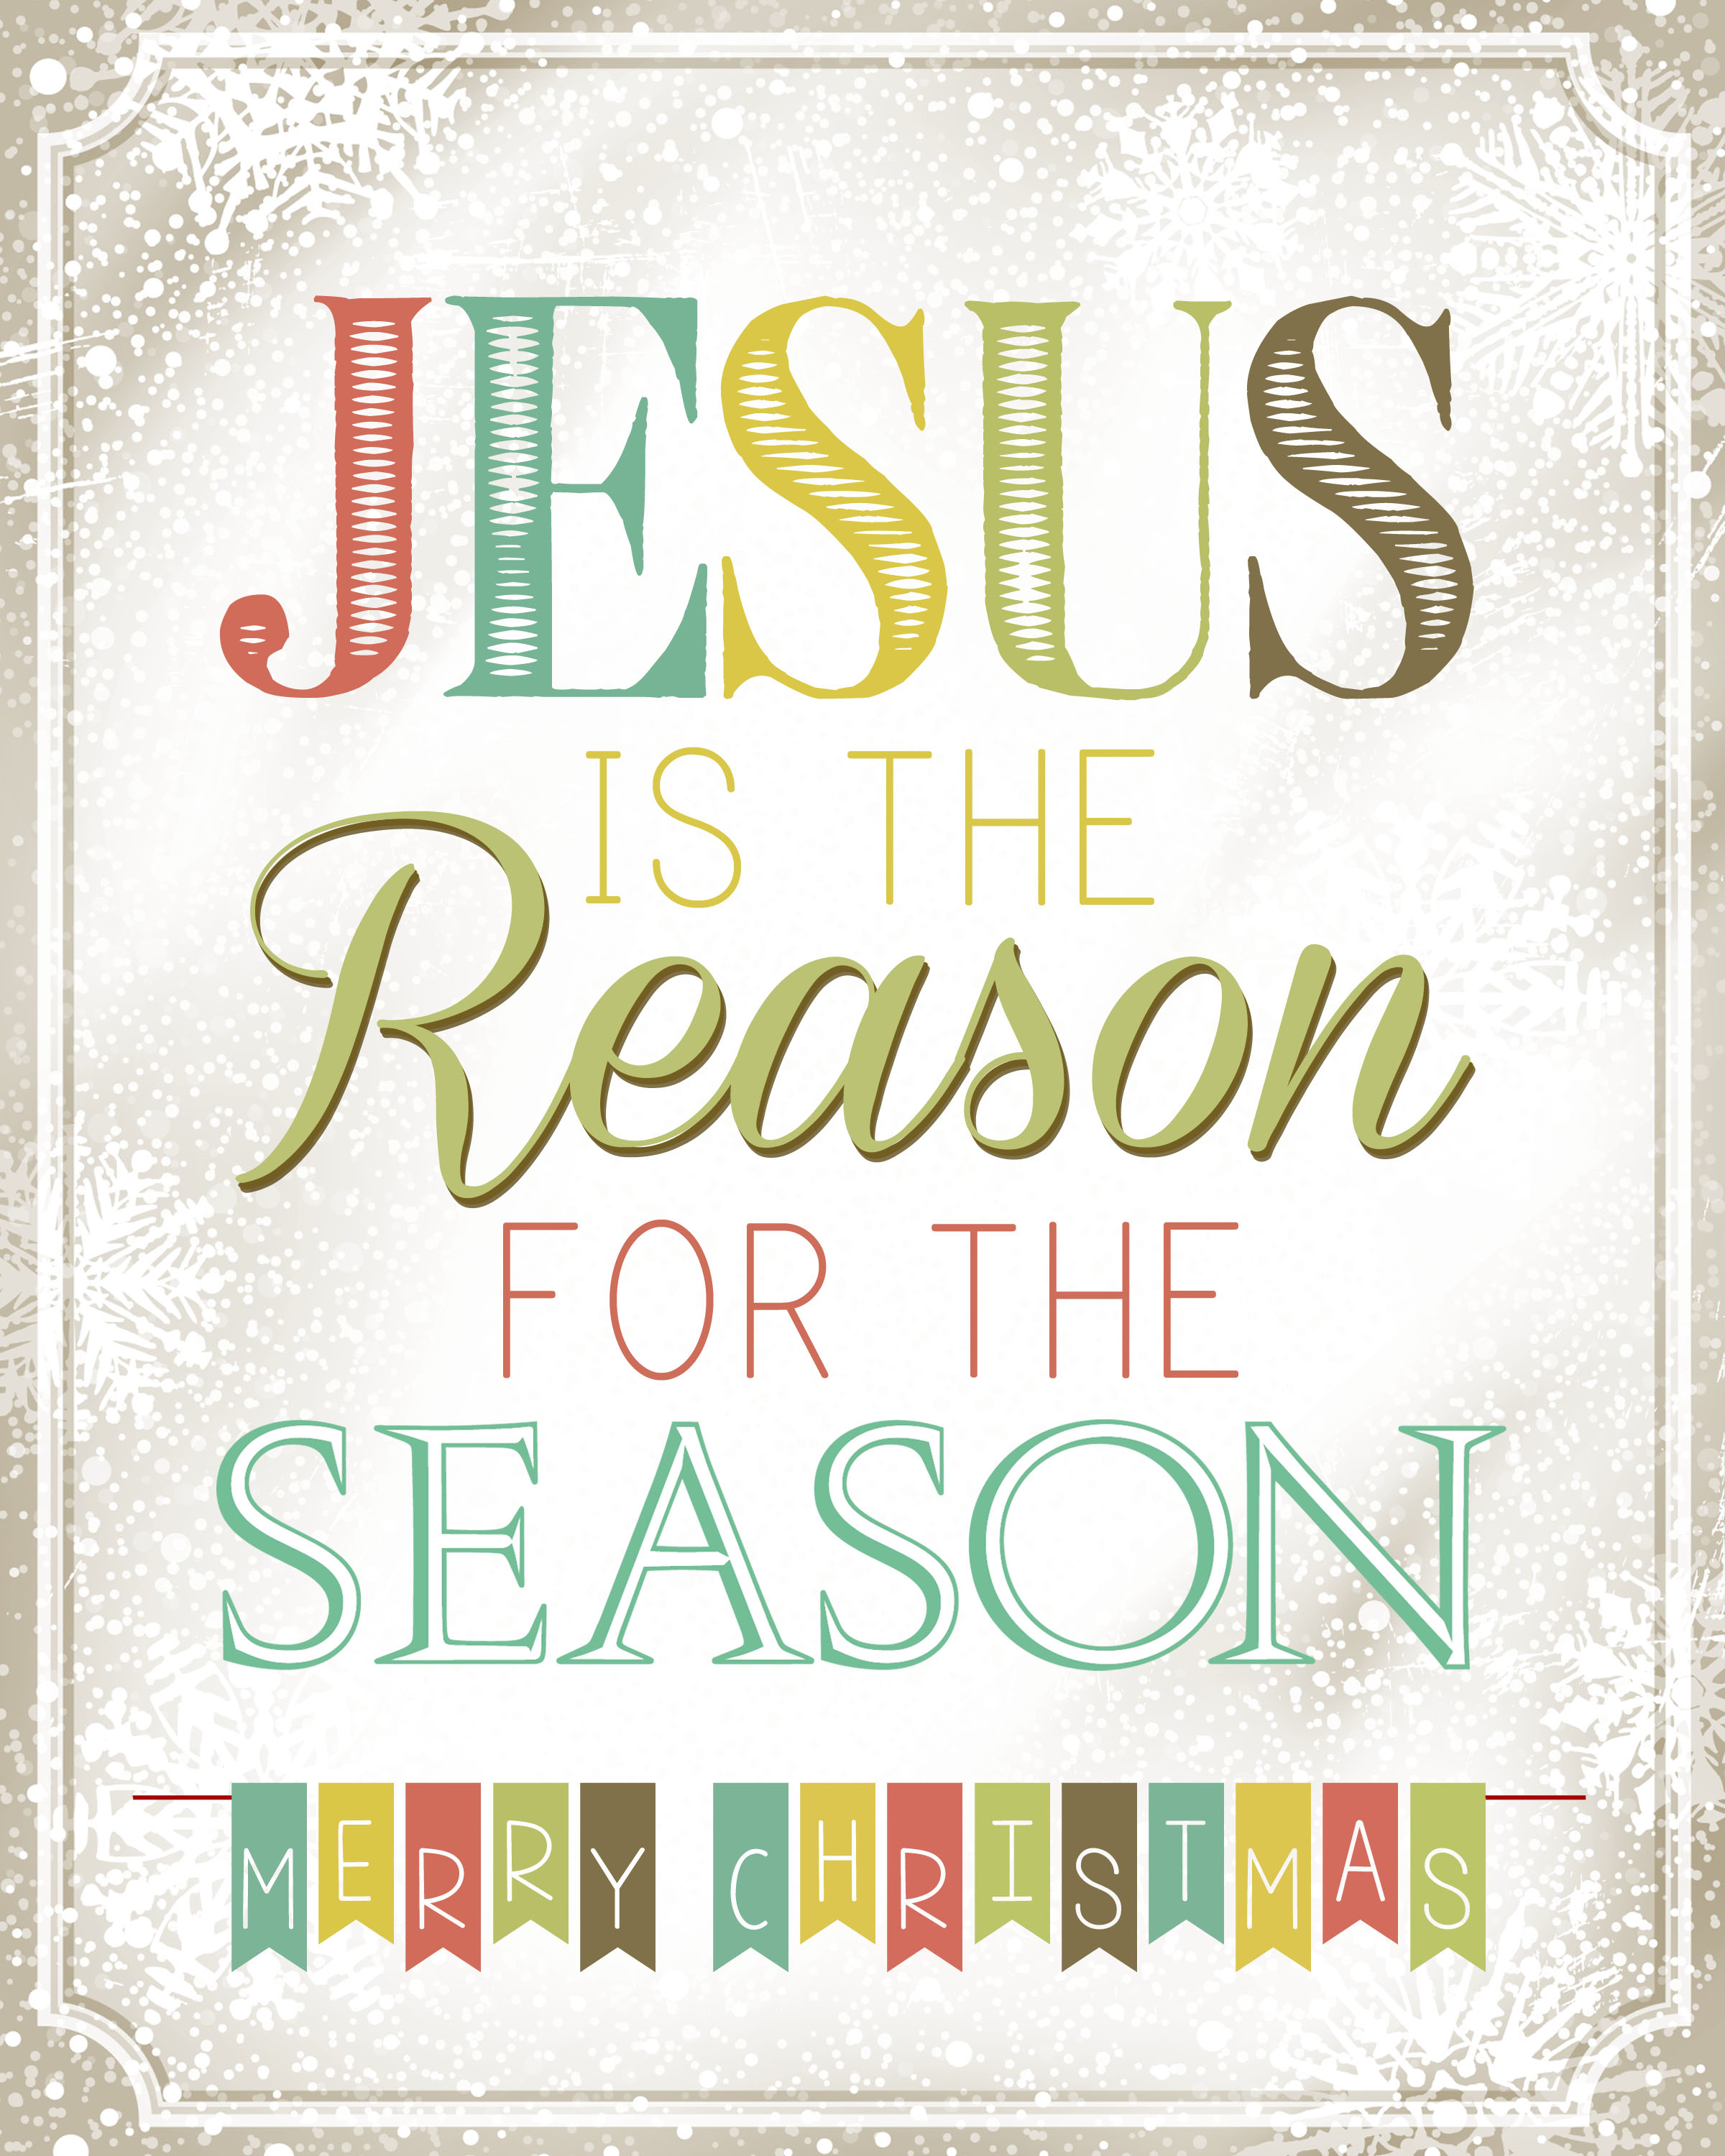 Jesus is the reason for the season second more colourful printable.